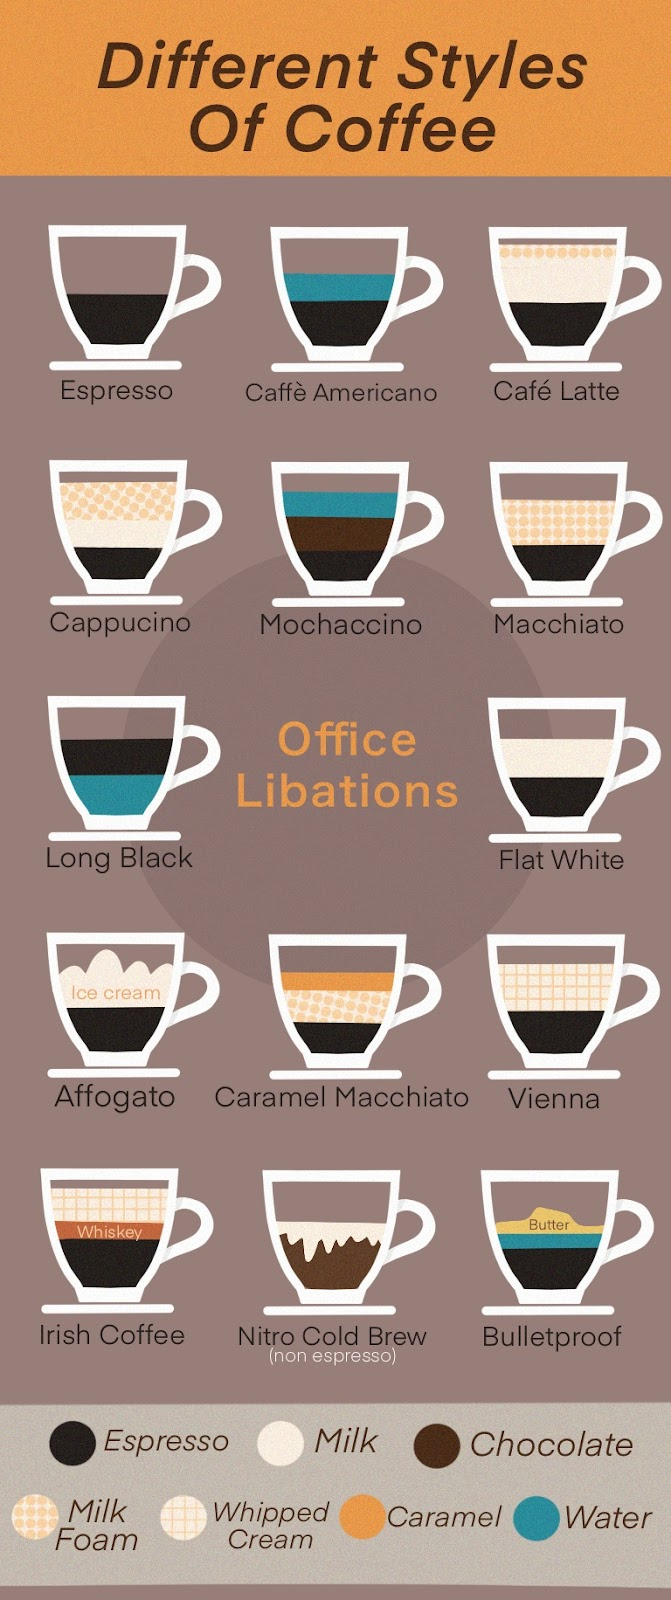 infographic for the 14 styles of office coffee for productivity by Office Libations